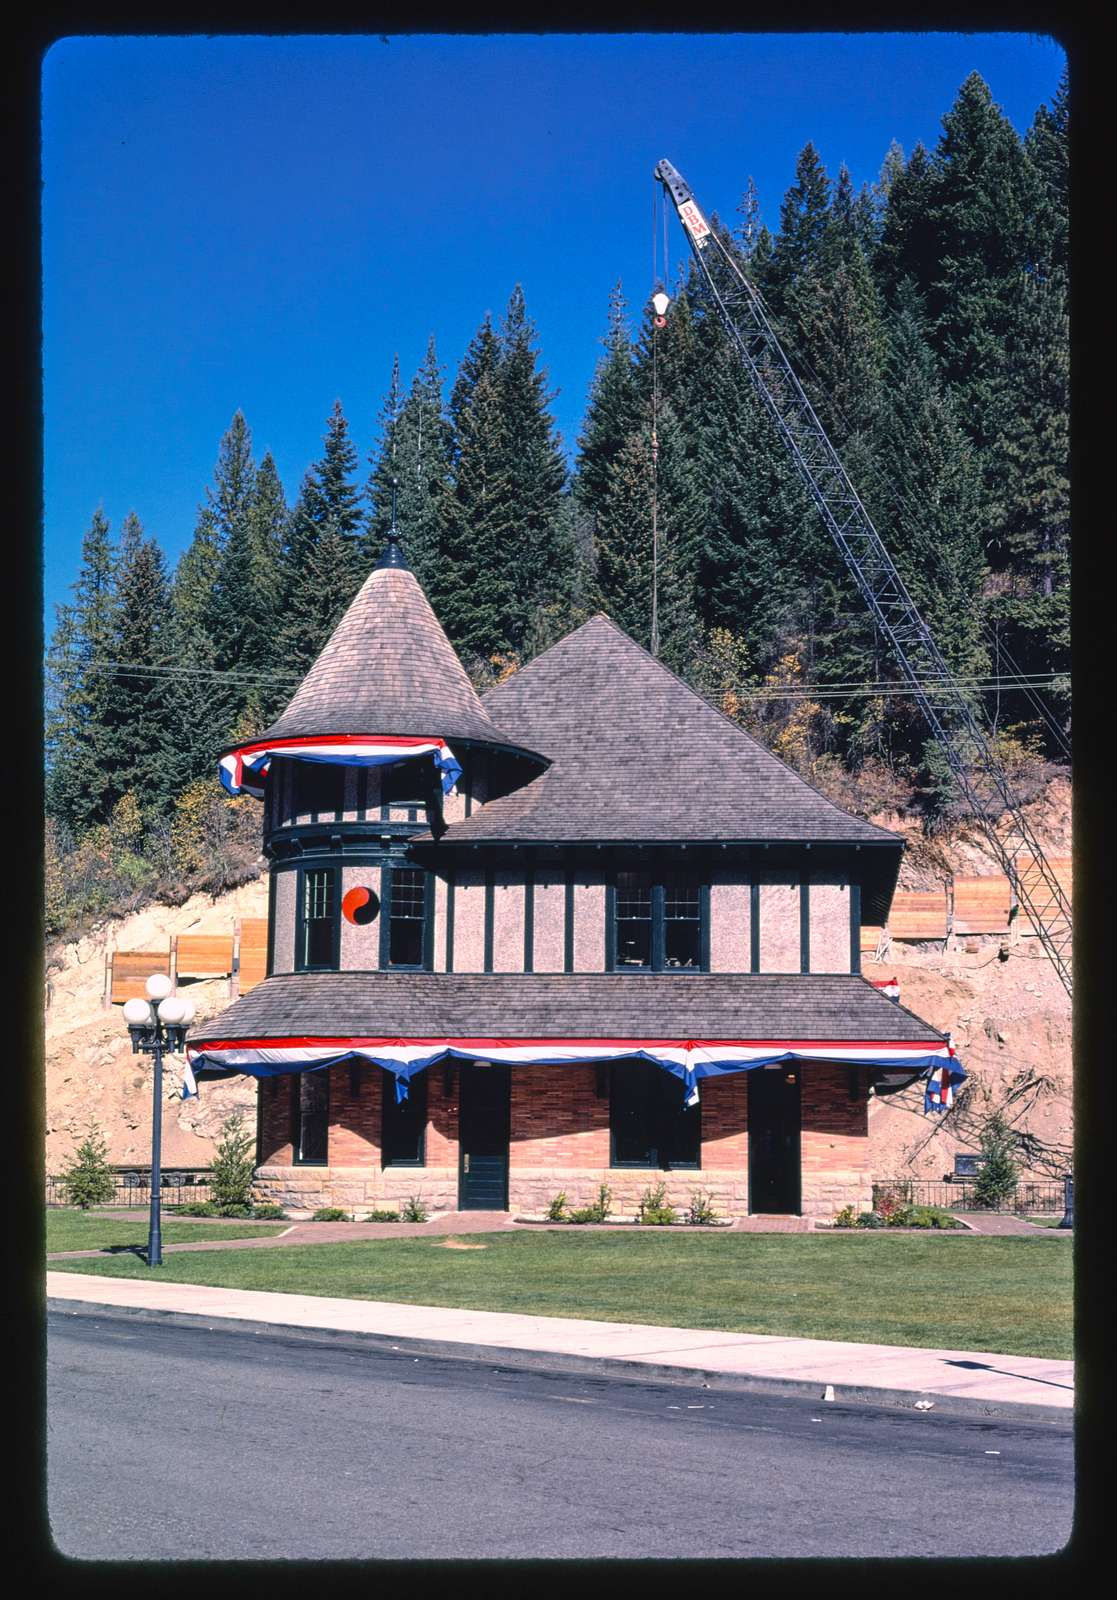 Railroad station (to be moved, highway construction), Wallace, Idaho